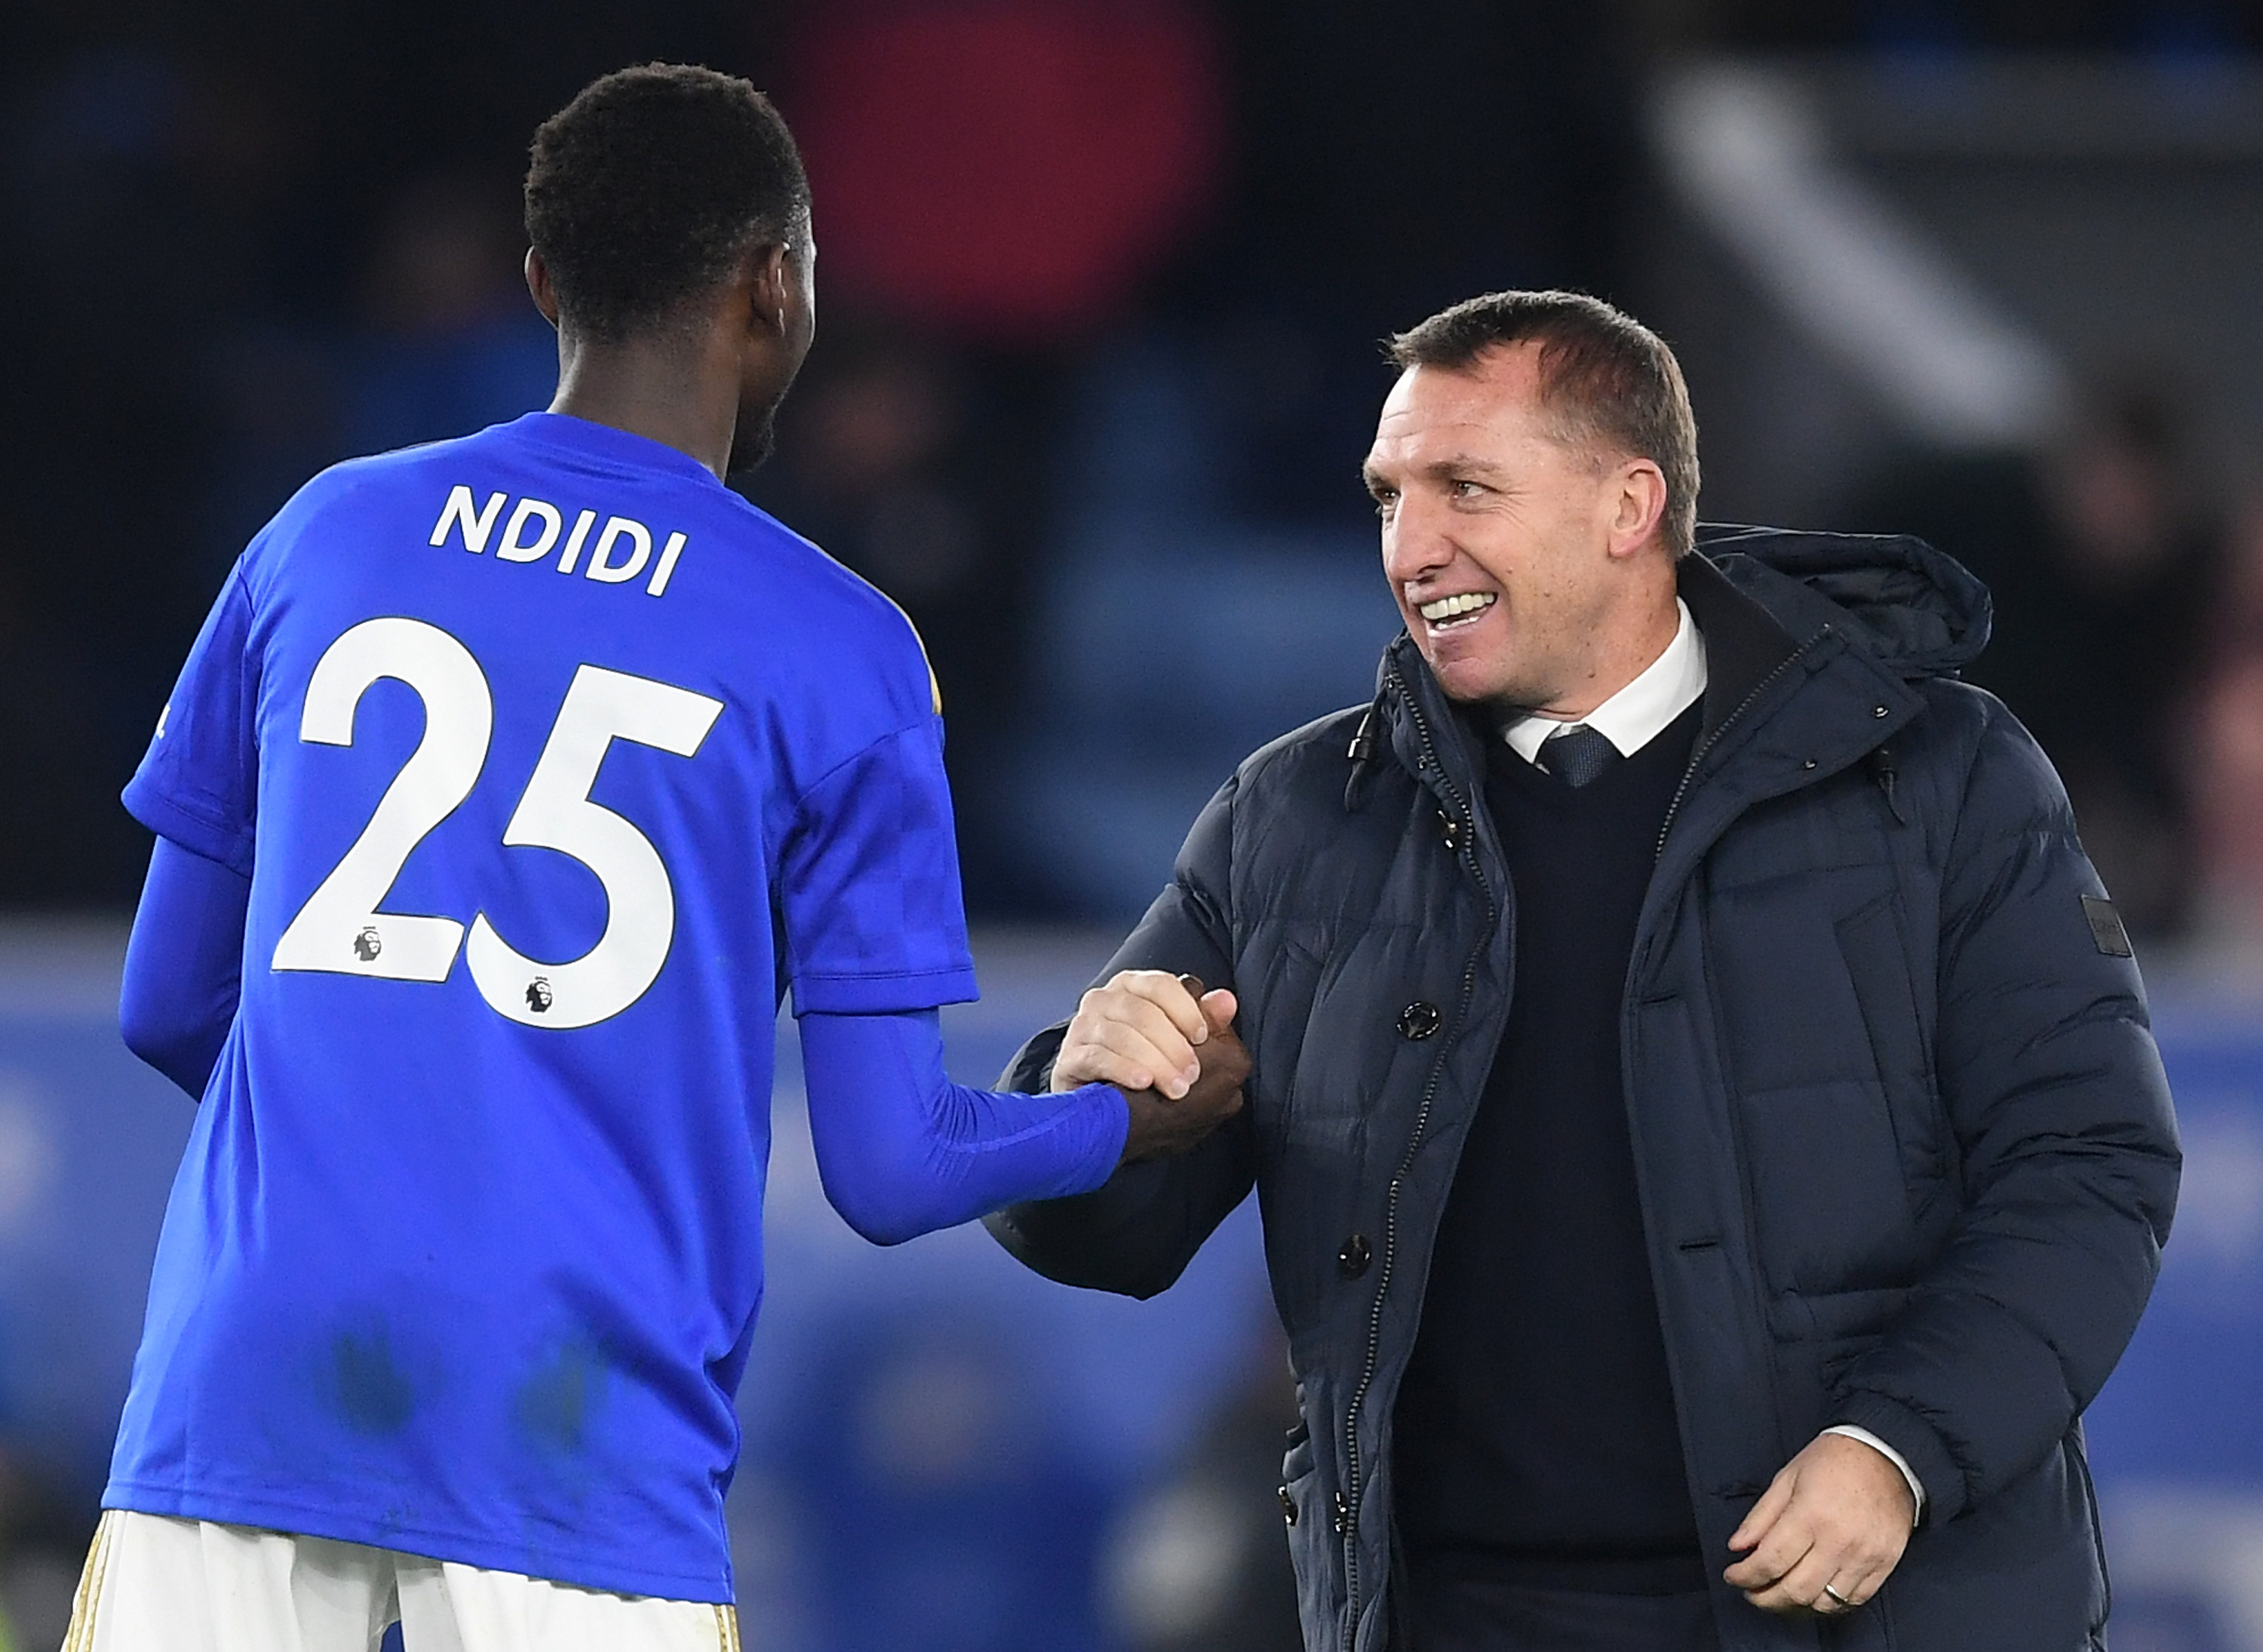 Ndidi happy at Leicester City (Photo by Michael Regan/Getty Images)